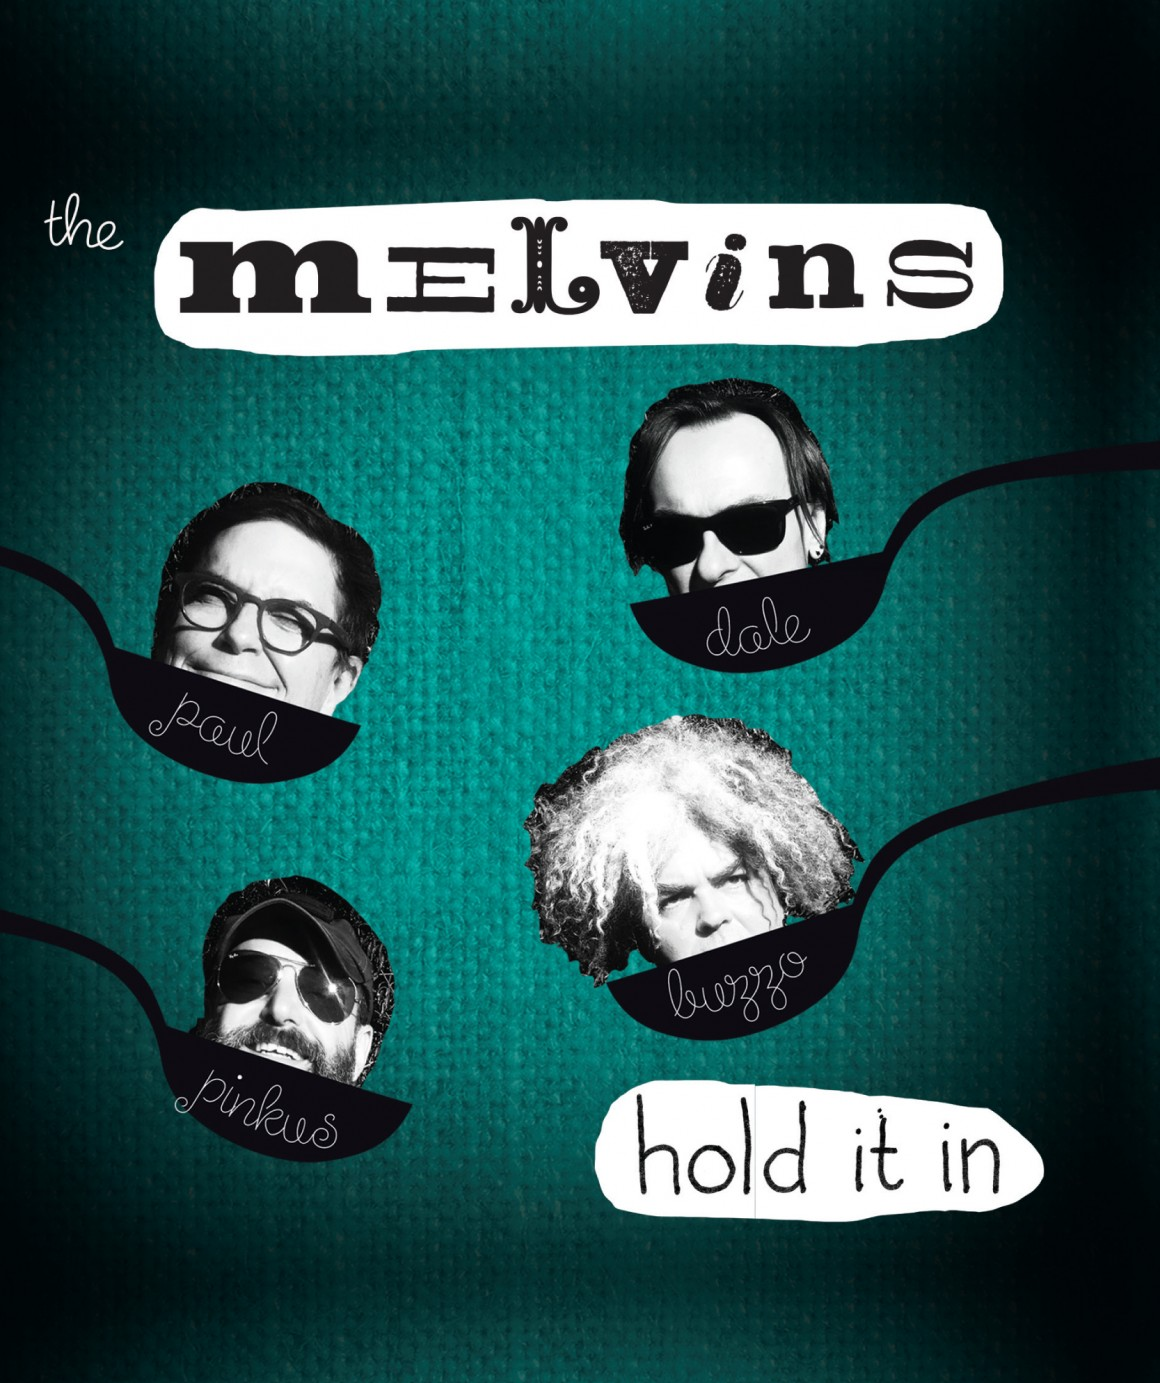 Melvins-Hold-It-In-Album-Review-1160x1383.jpg